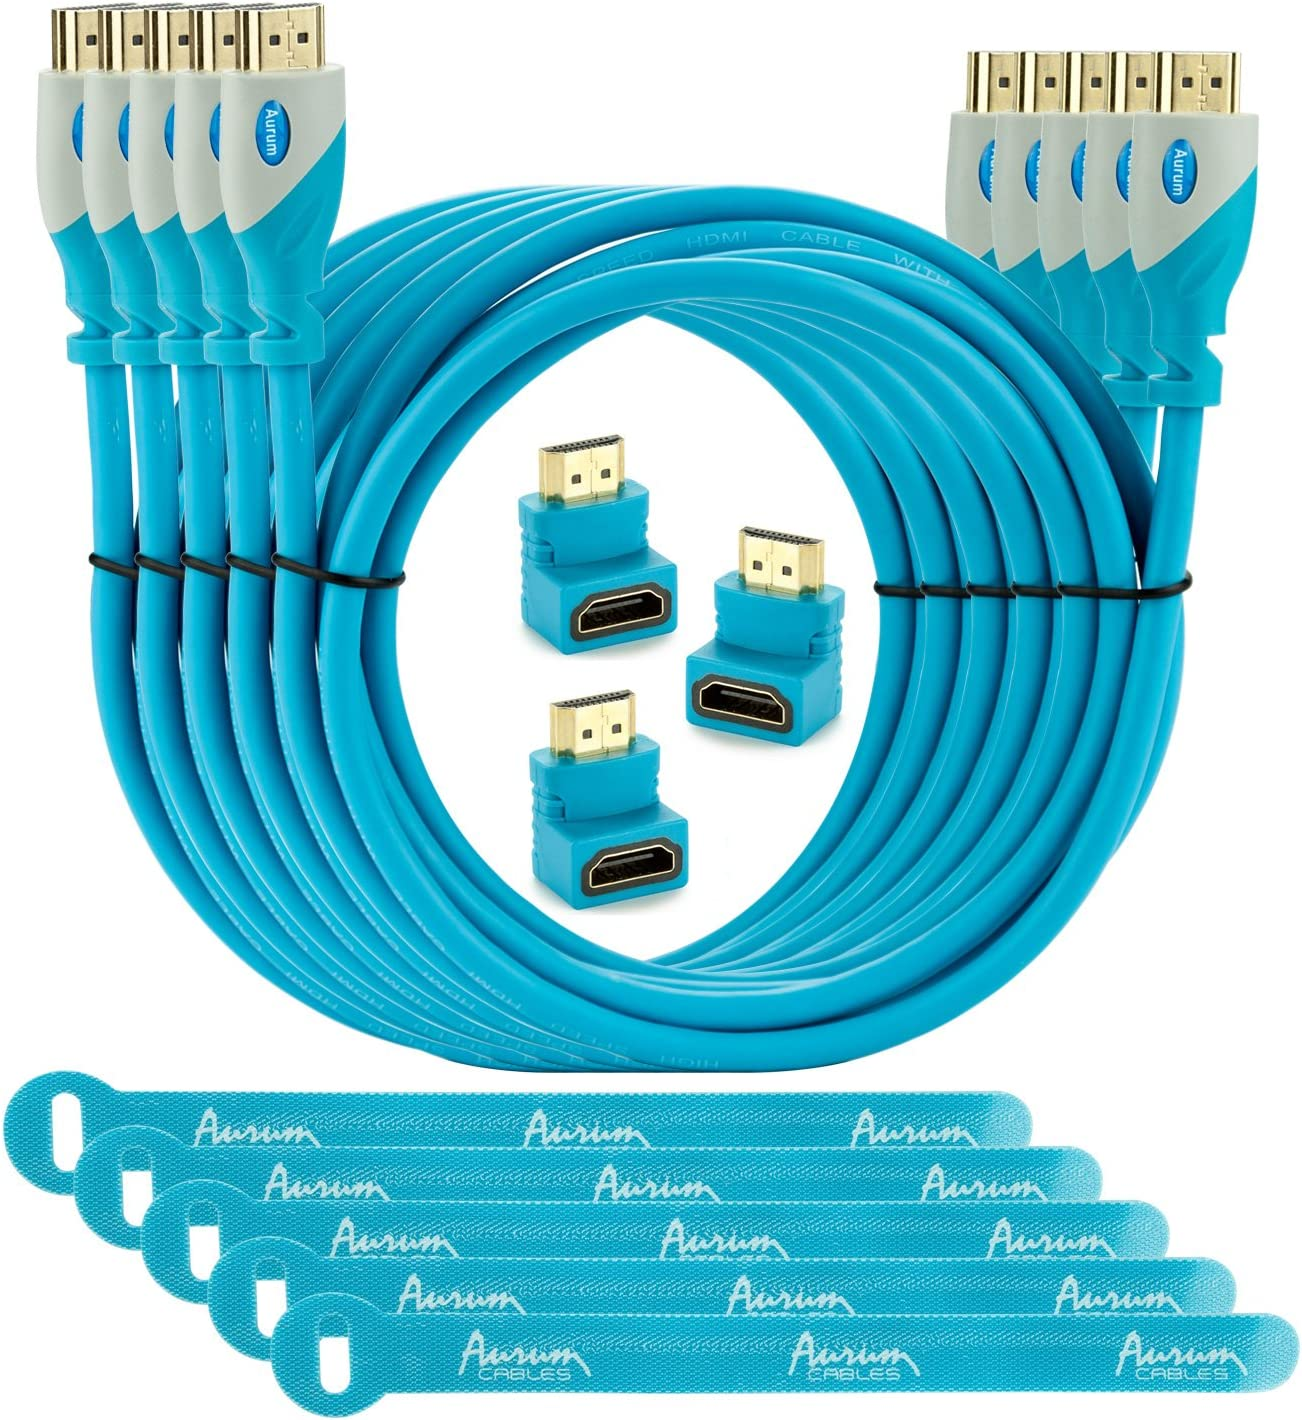 - 6 Feet Supports 3D /& Audio Return Channel Aurum Pro Series With Three 90 Degree Angle Adapter and Velcro Cable Ties Pack of 5 High Speed HDMI Cable 6 Ft with Ethernet 5 Pack Latest Version